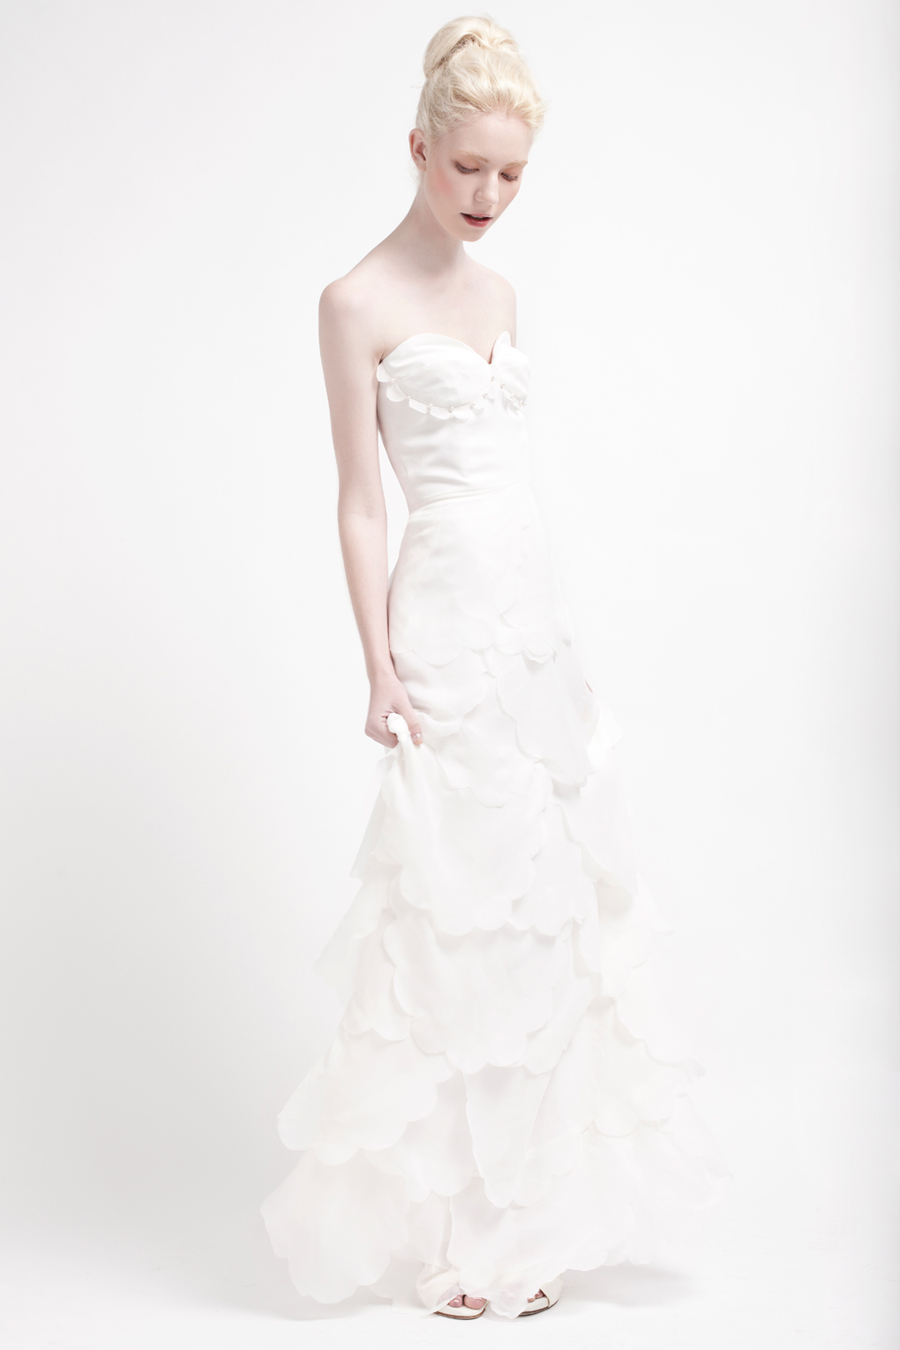 Windflower - Kelsey Genna Debut Bridal Collection